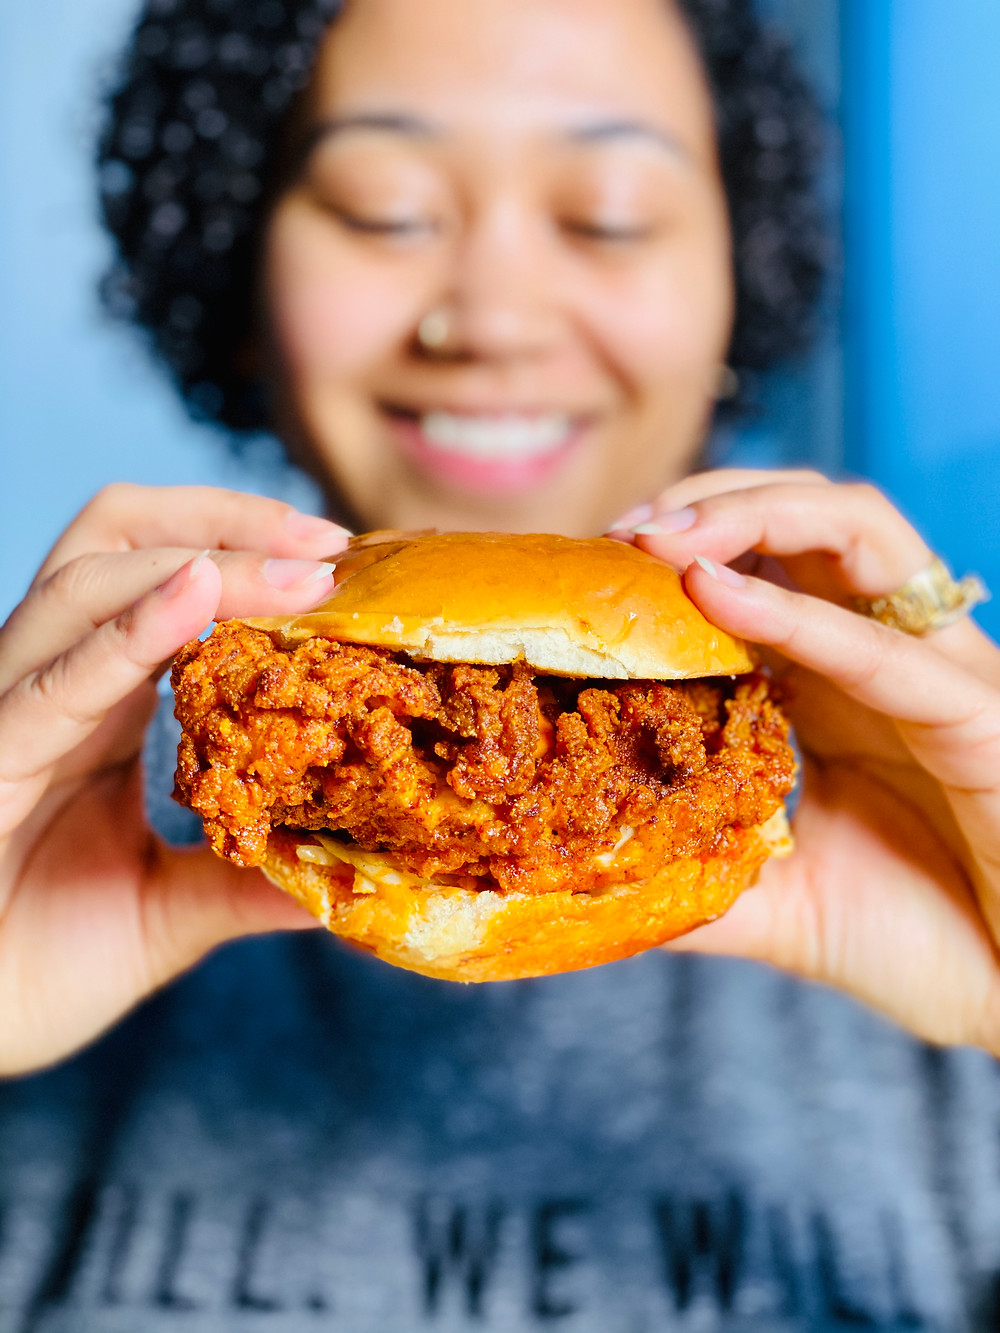 woman holding a nashville hot fried chicken sandwich and smiling